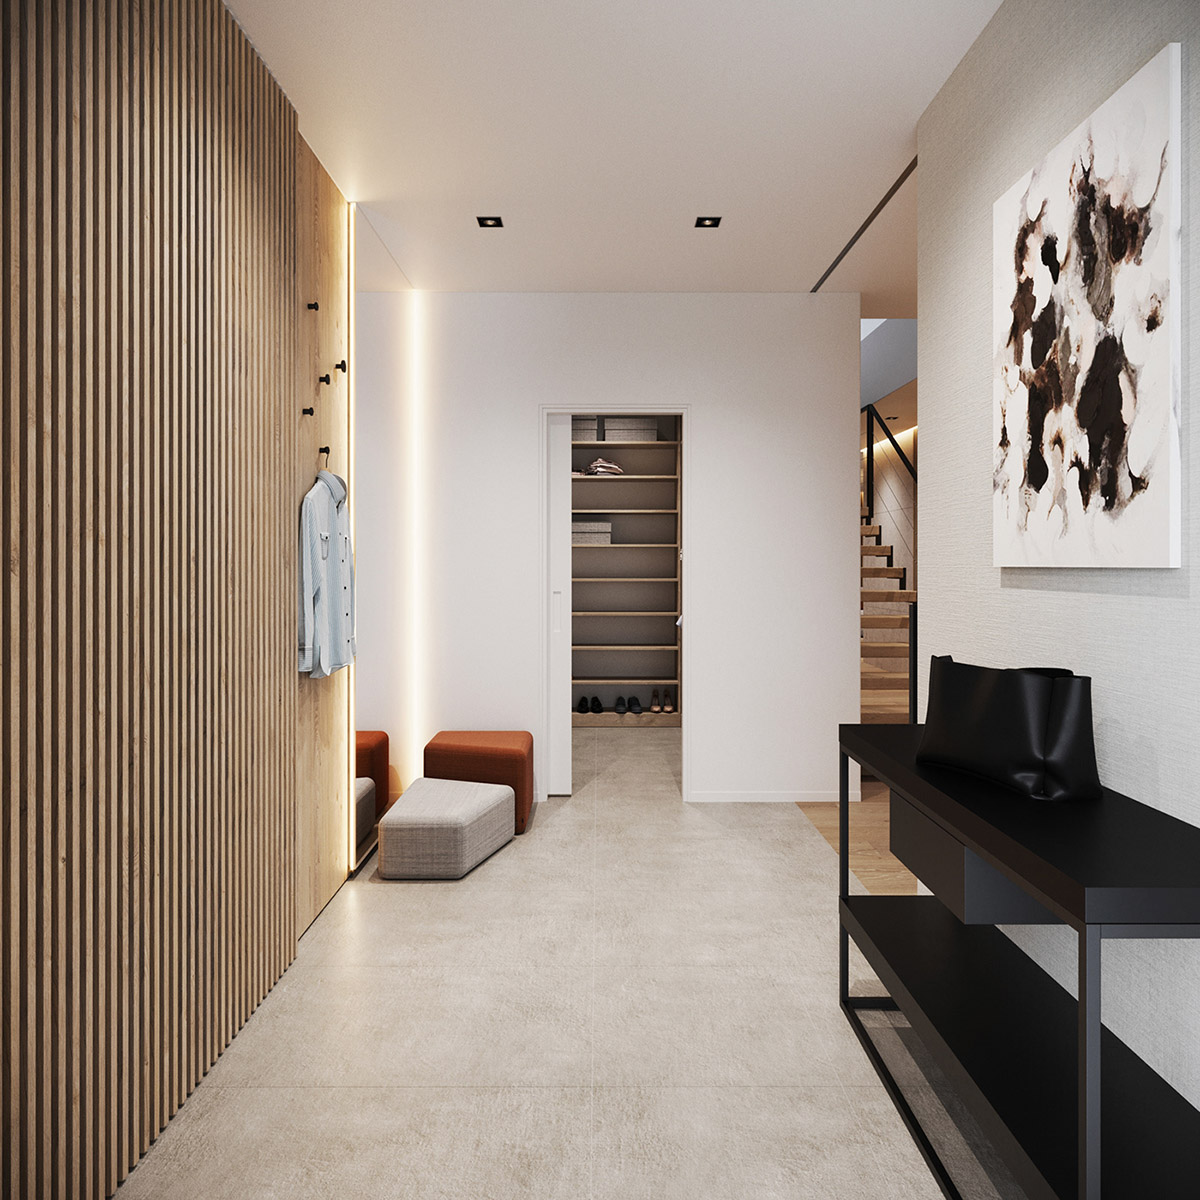 16 Great Ways To Dress Up A Drab Hallway: A Minimalist Home: Earthy, Modern & Masculine